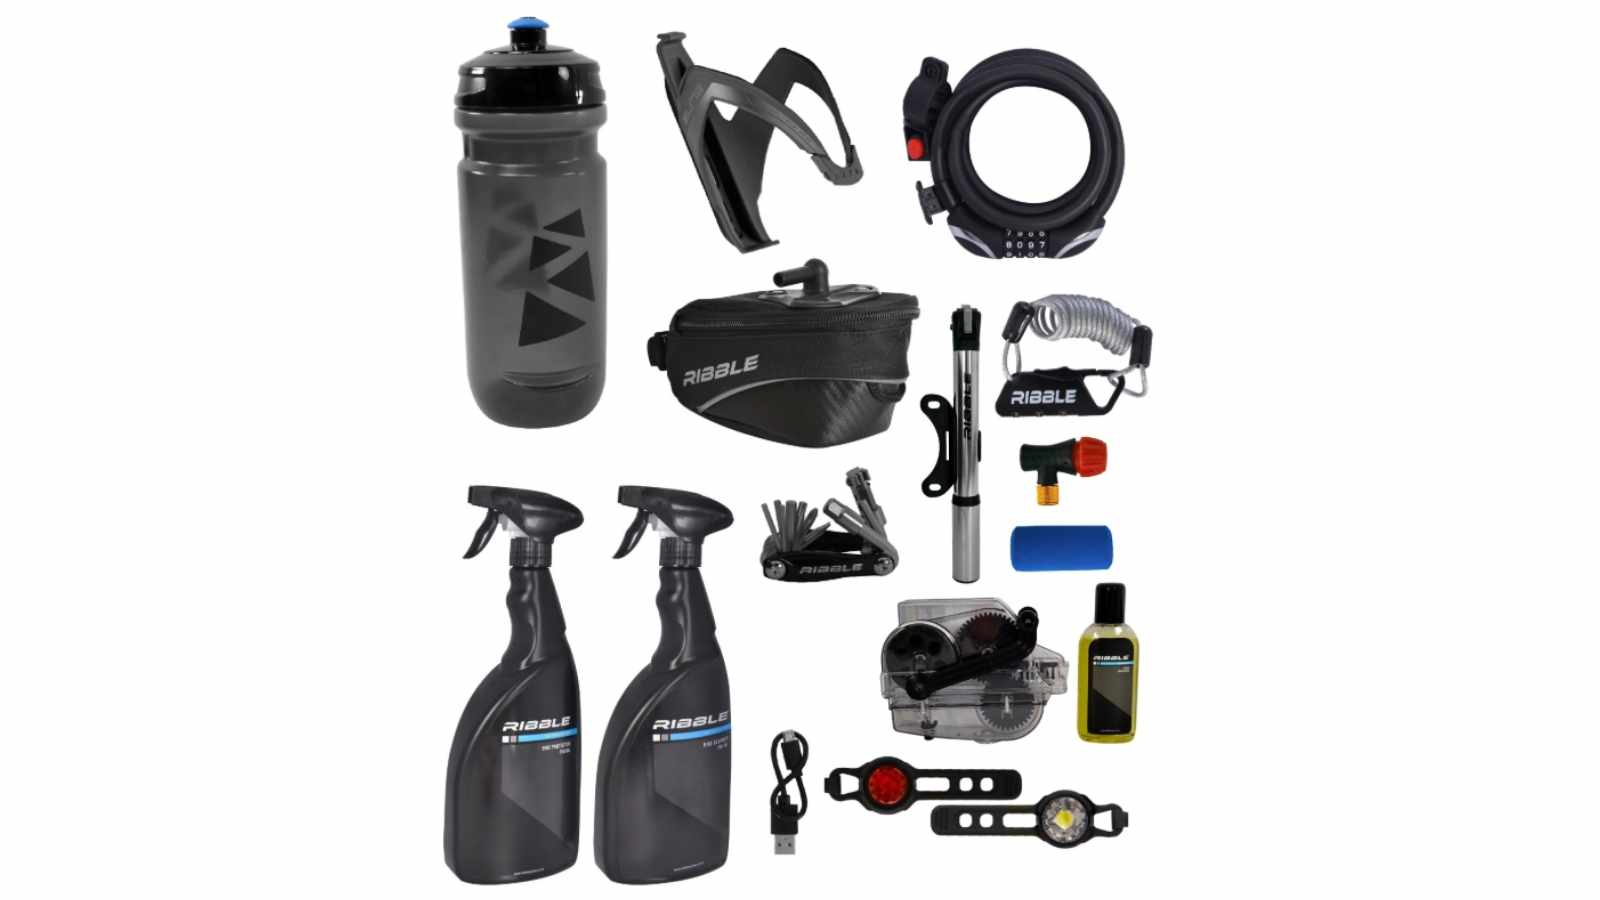 The Ribble Bike Bundle contains a whole host of basic road cycling accessories